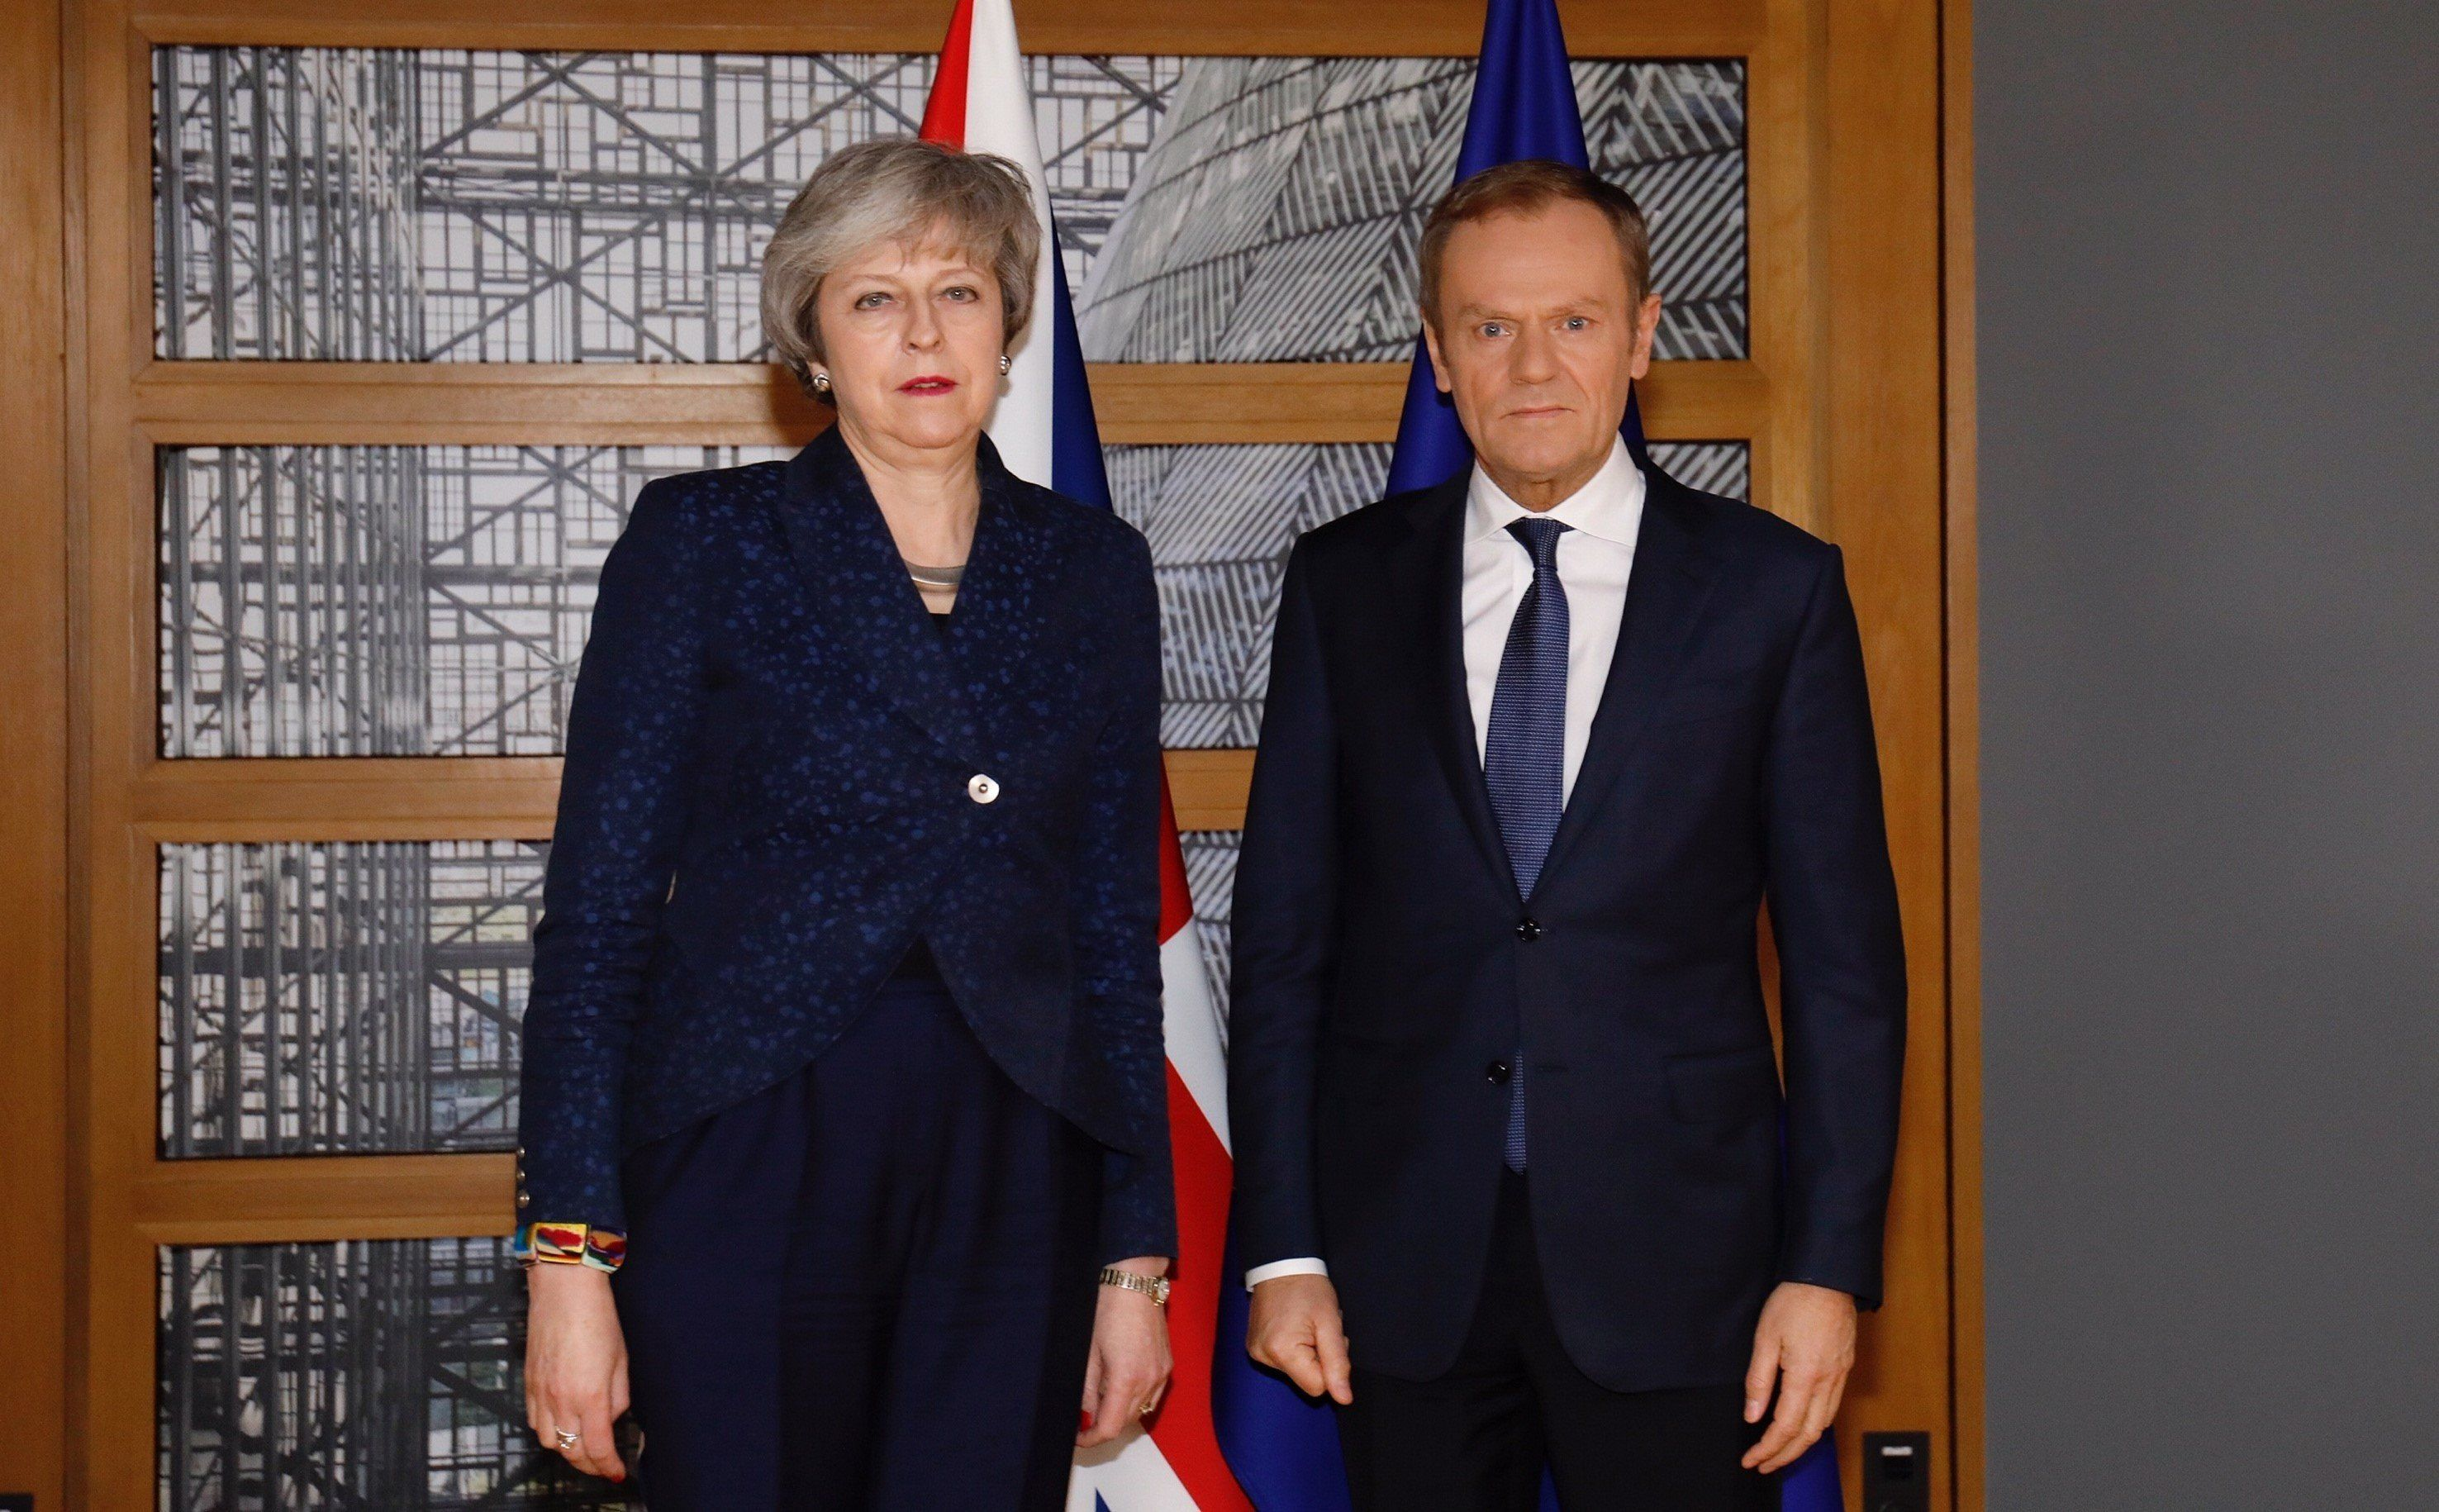 If This Picture Is A Reflection Of Brexit Negotiations We Are Well And Truly